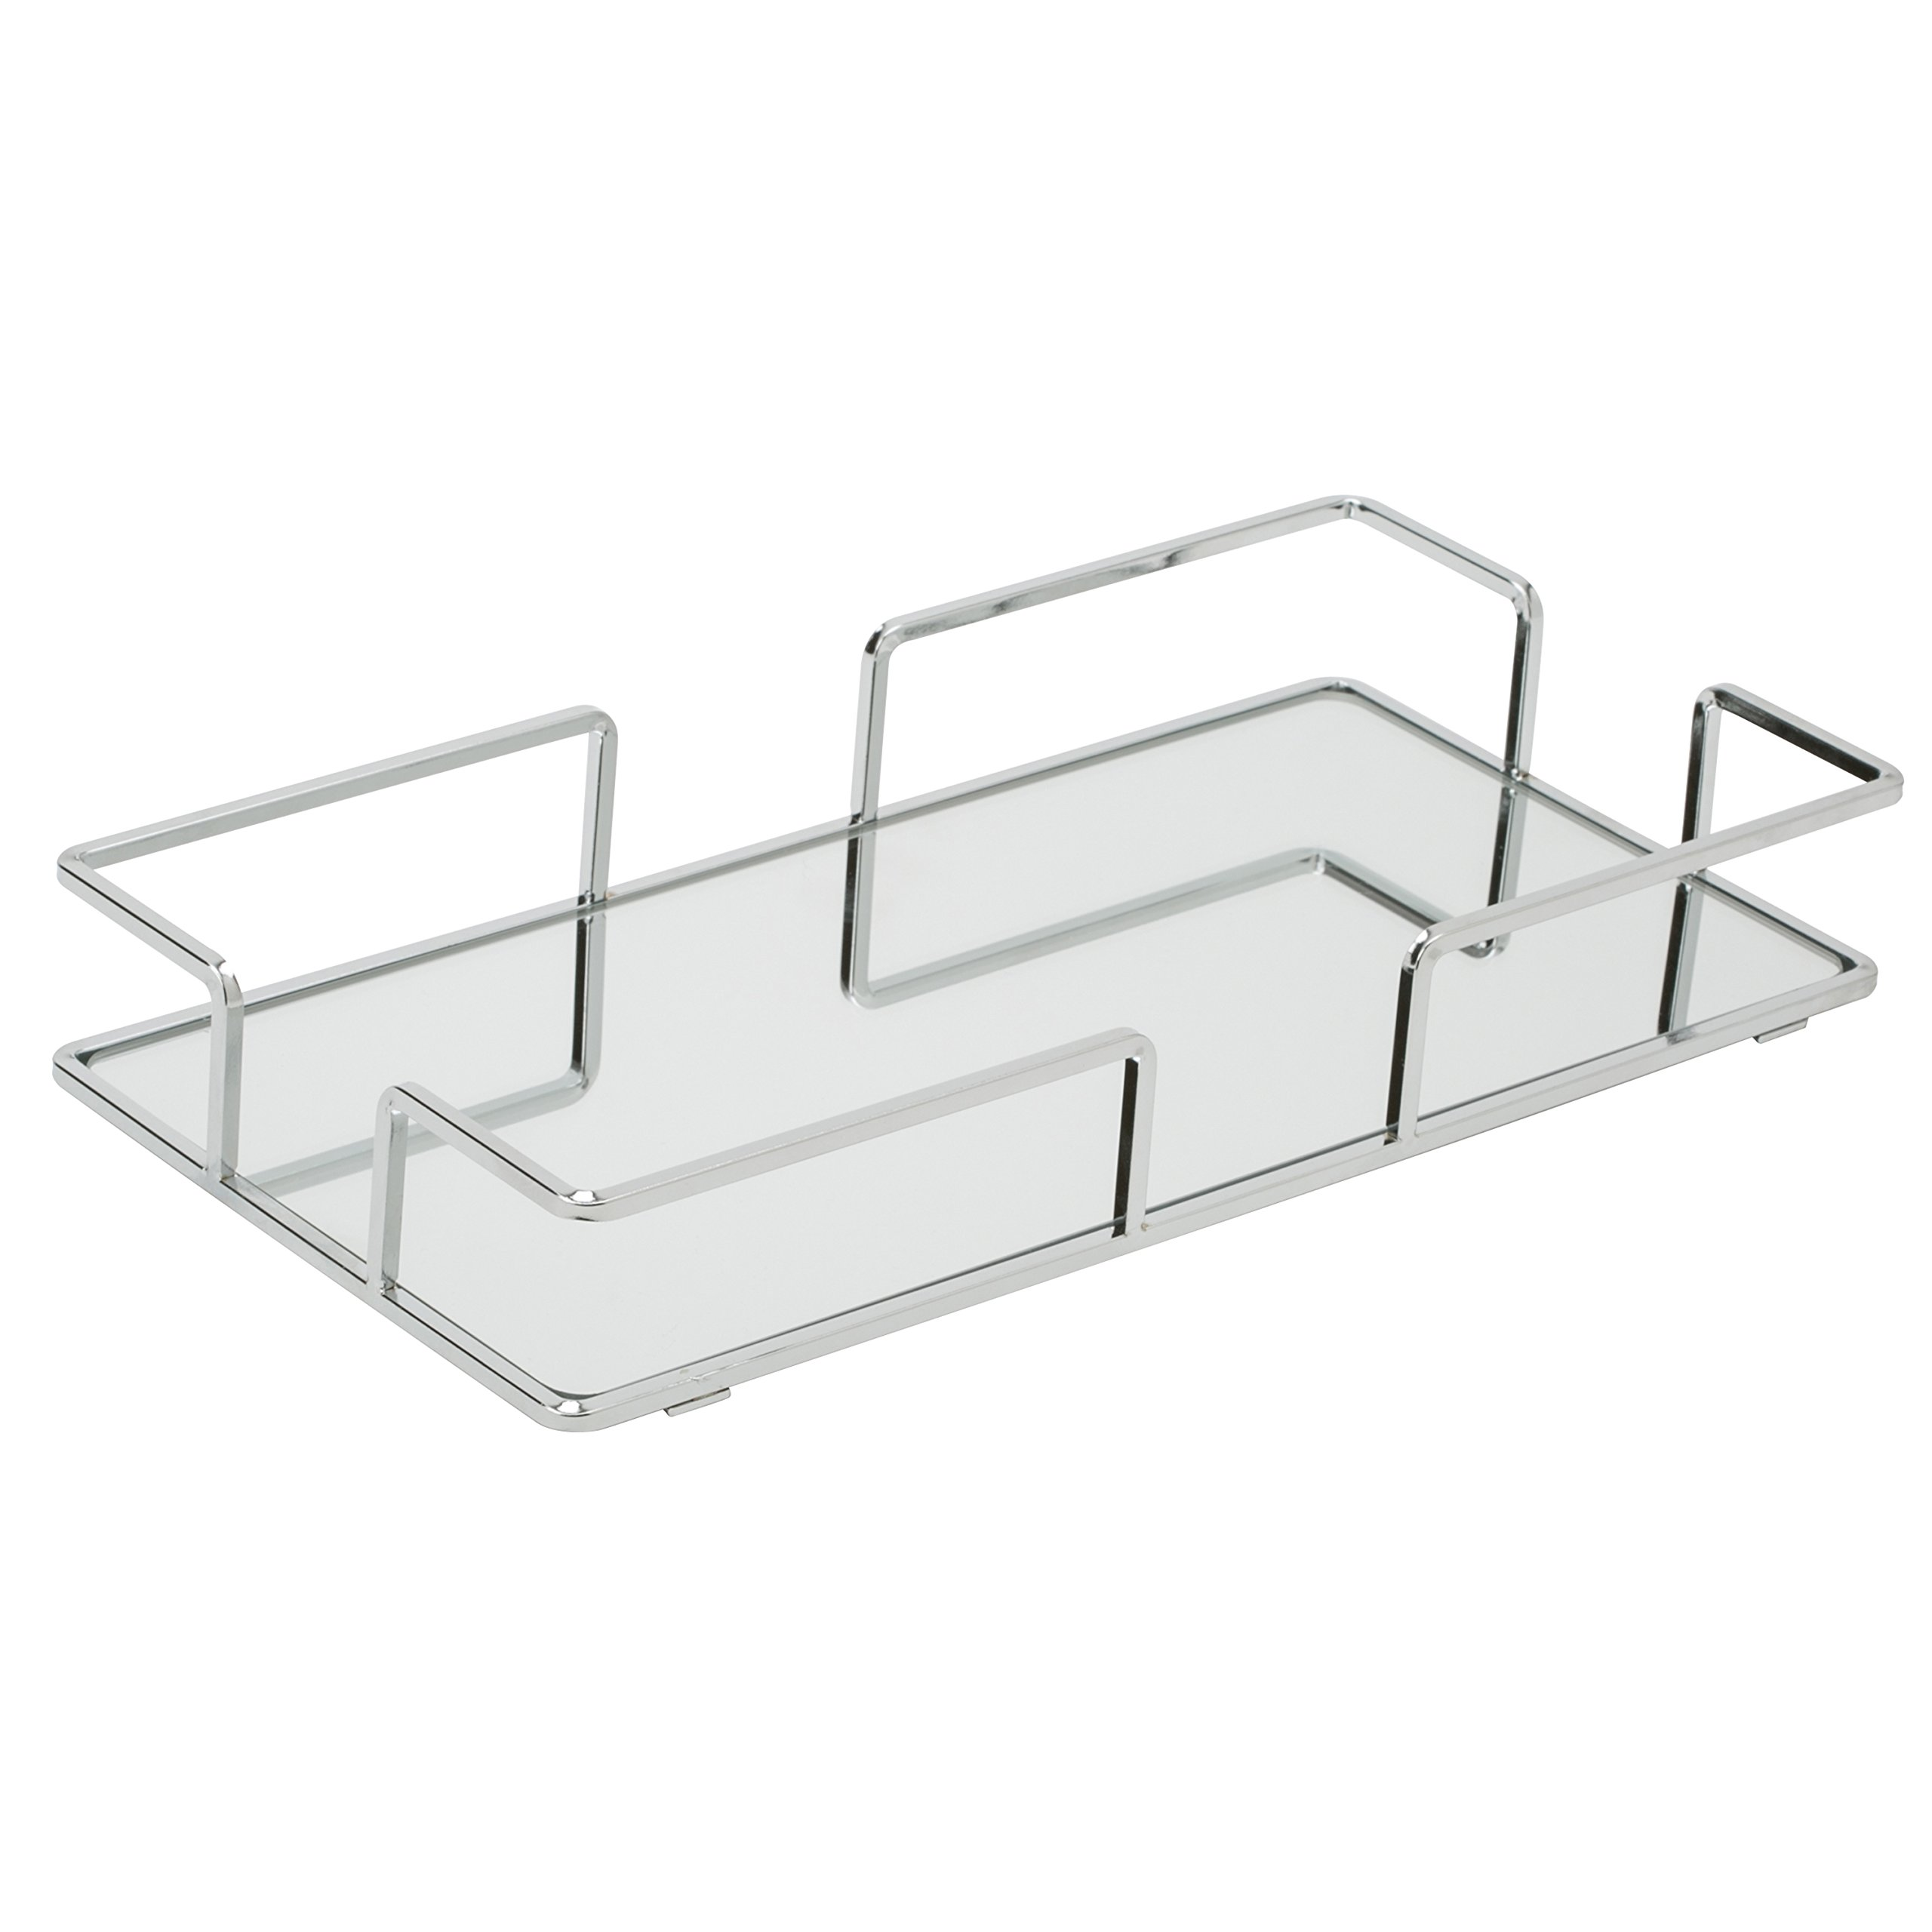 Home Details Mirrored Vanity Tray for Dresser, Perfume, Desk, Cosmetic & Jewelry Organizer, Decorative, Chrome by Home Details (Image #1)